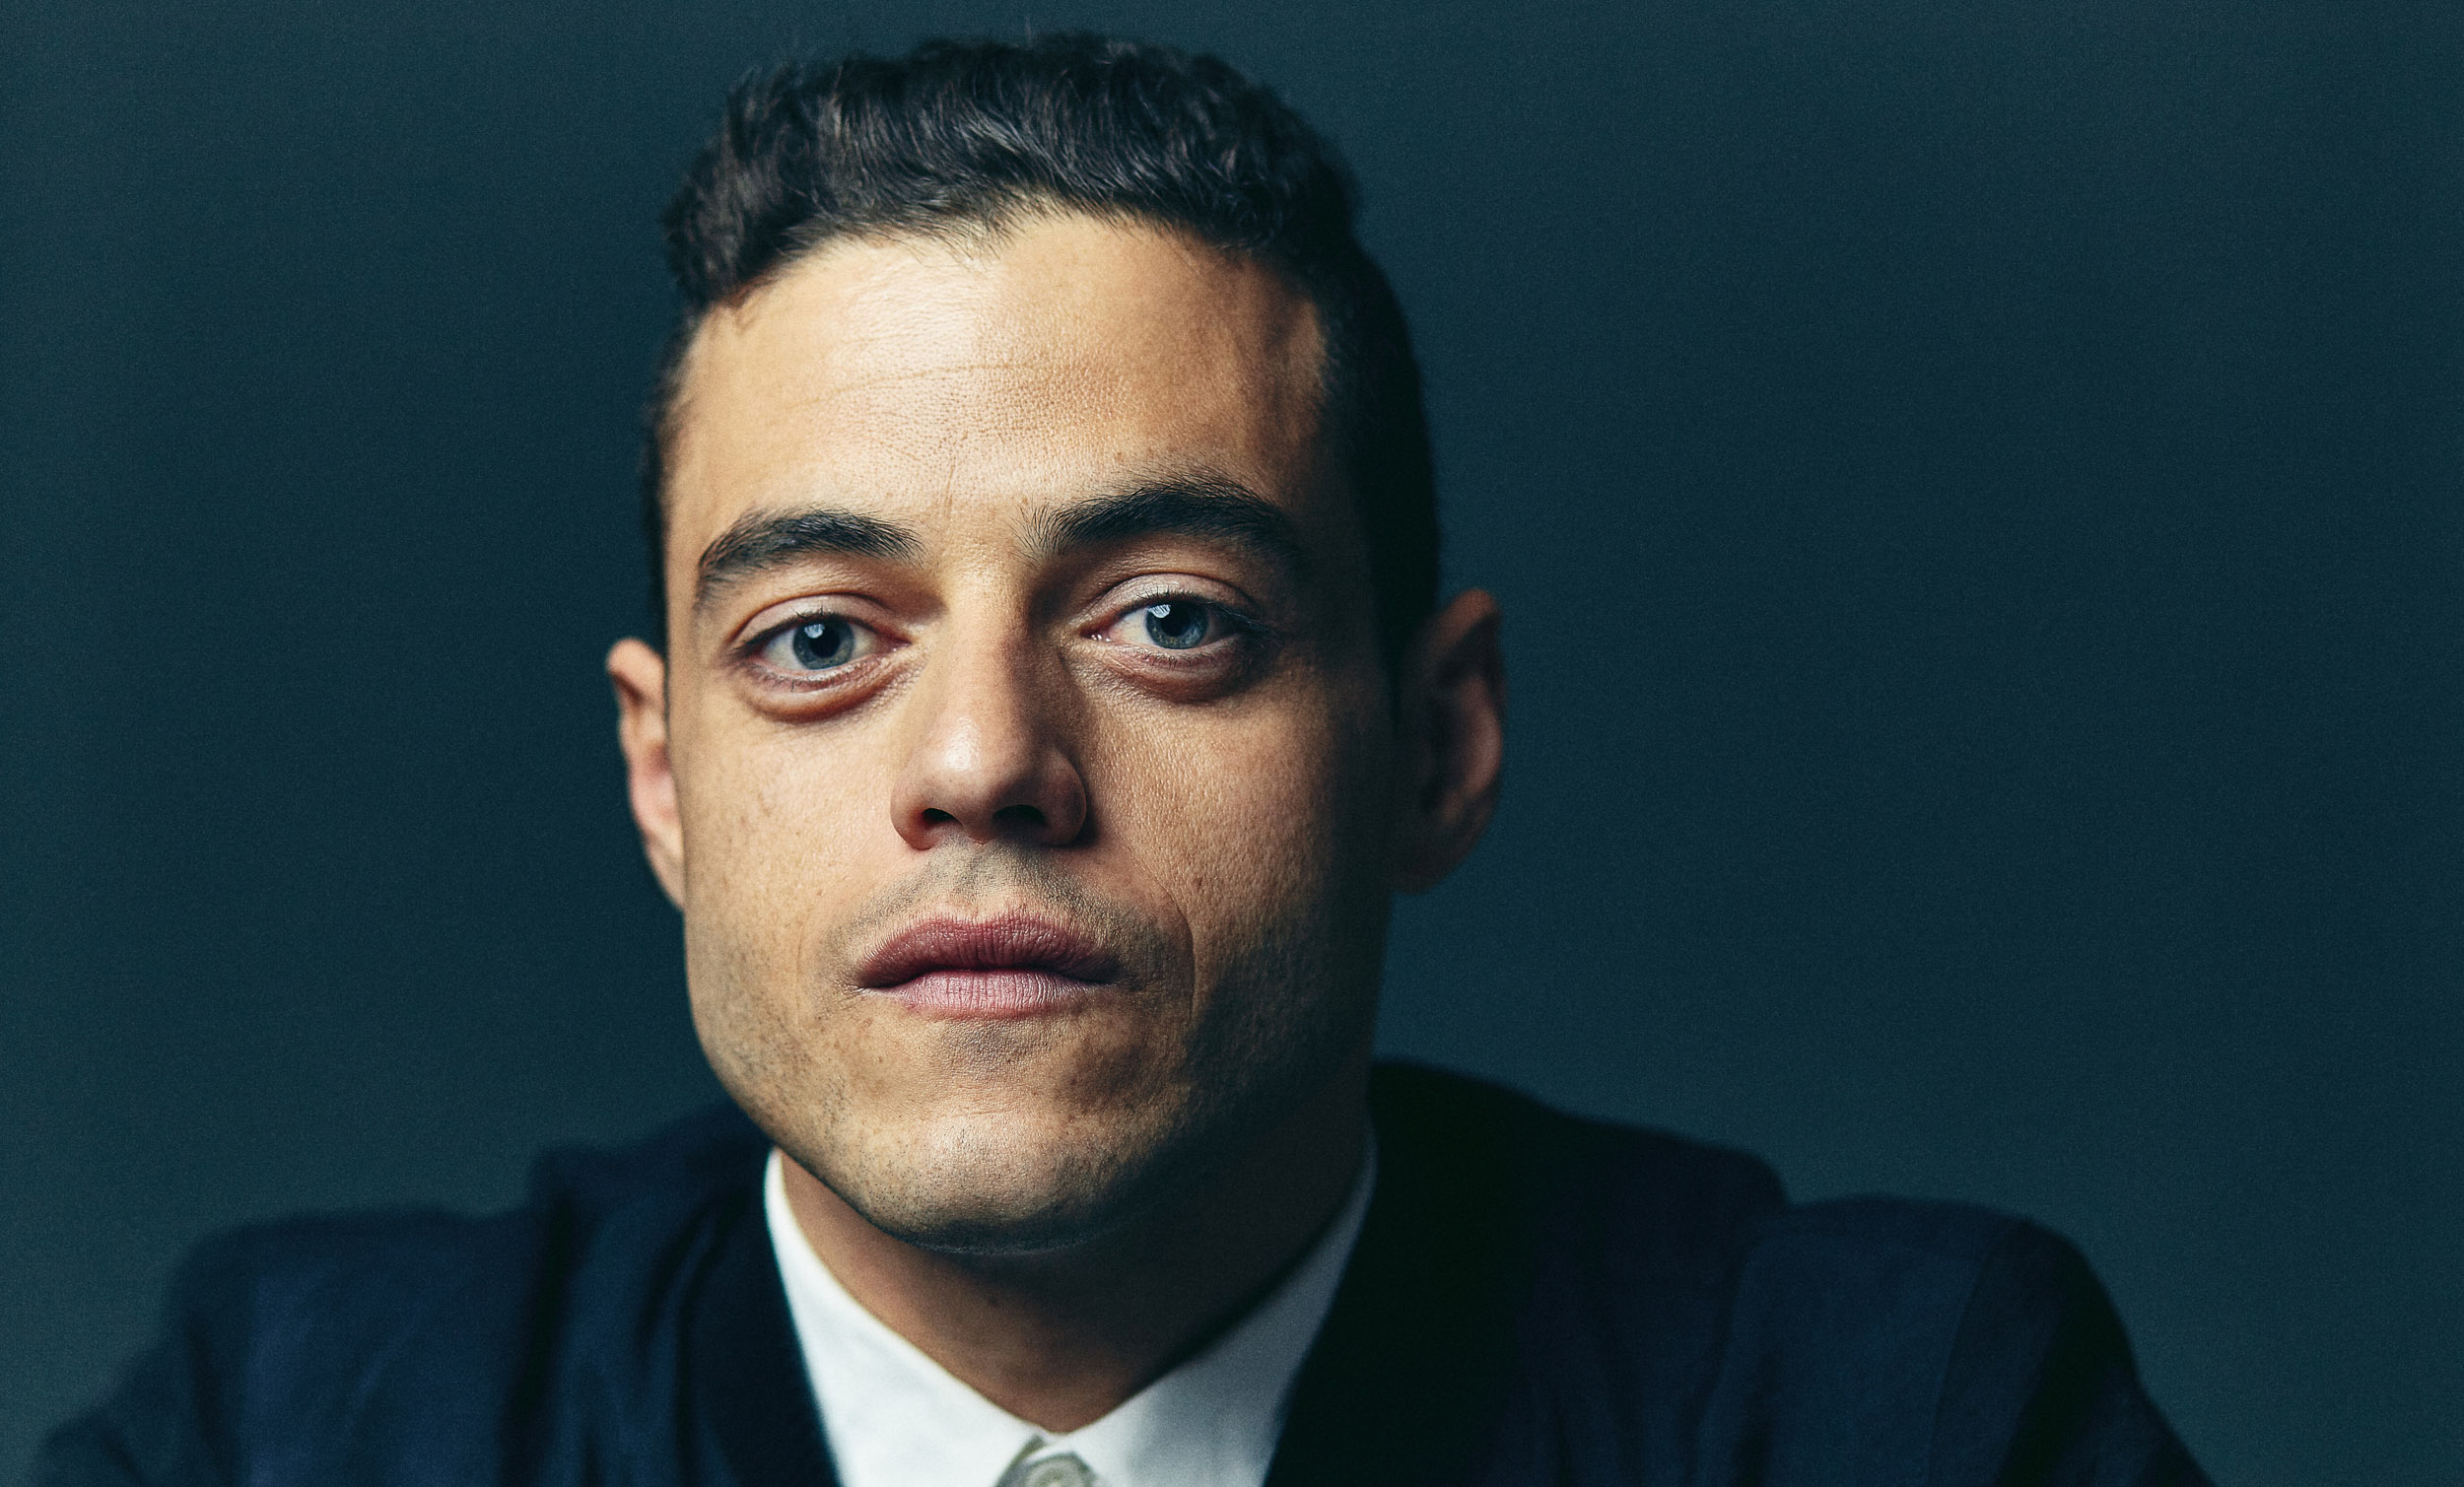 20150820_MrRobot-053_v2_WEB_NEW